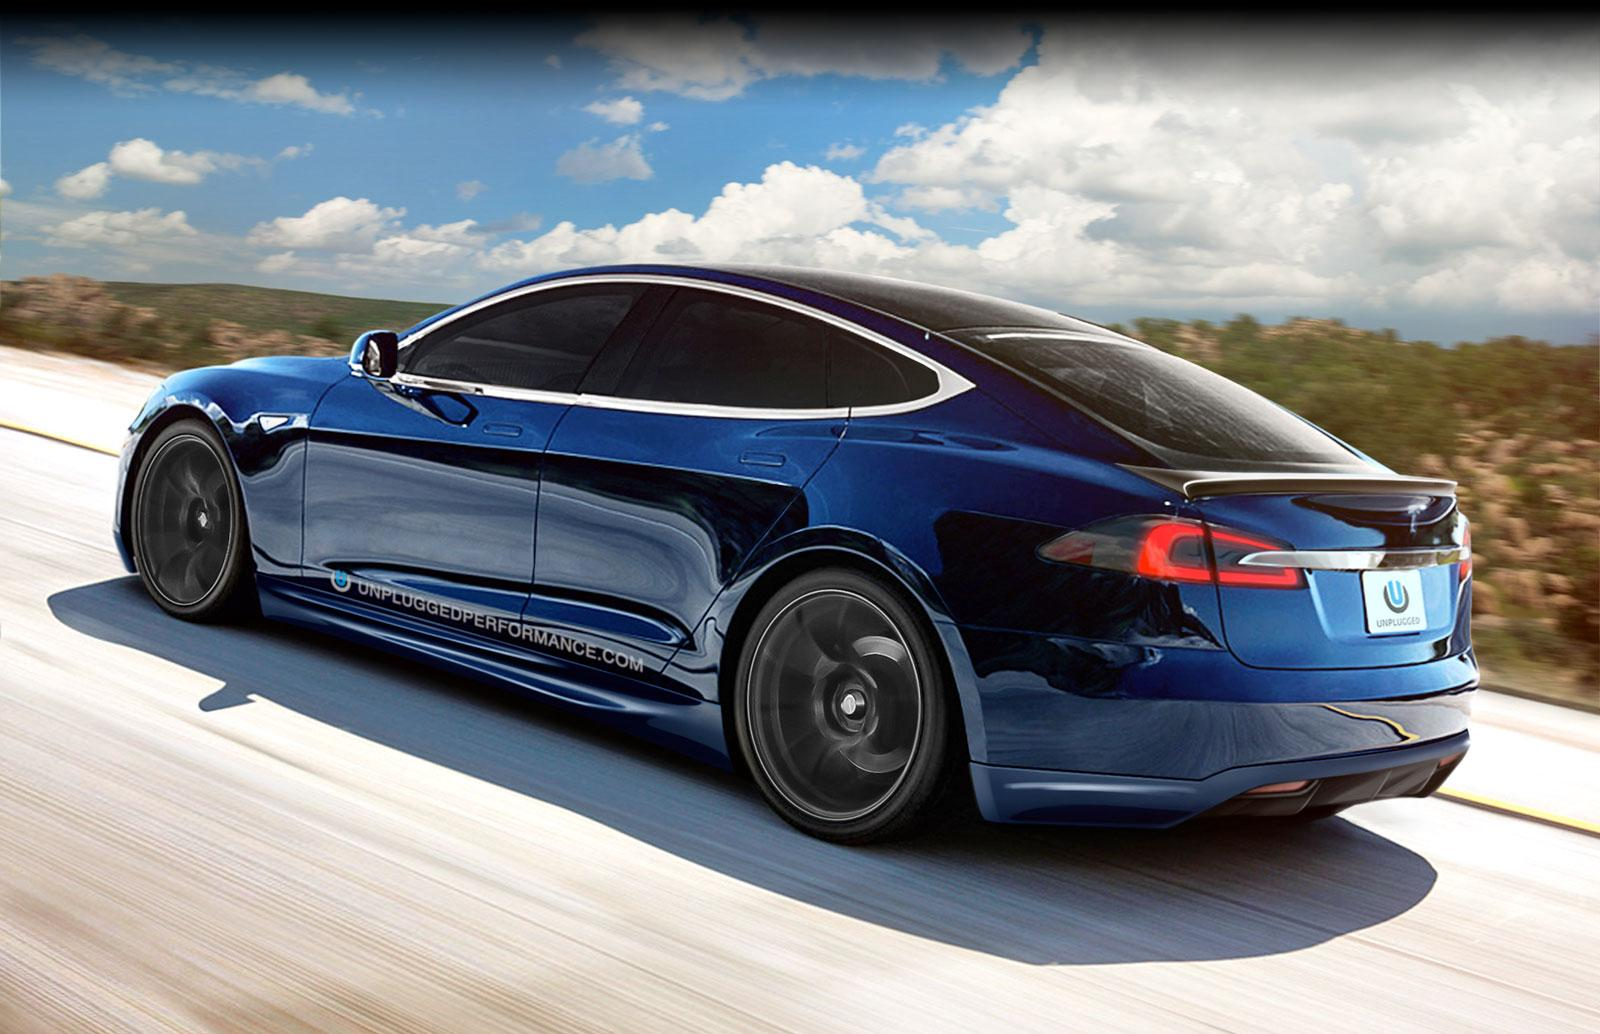 http://www.automobilesreview.com/img/unplugged-performance-tesla-model-s/unplugged-performance-tesla-model-s-03.jpg